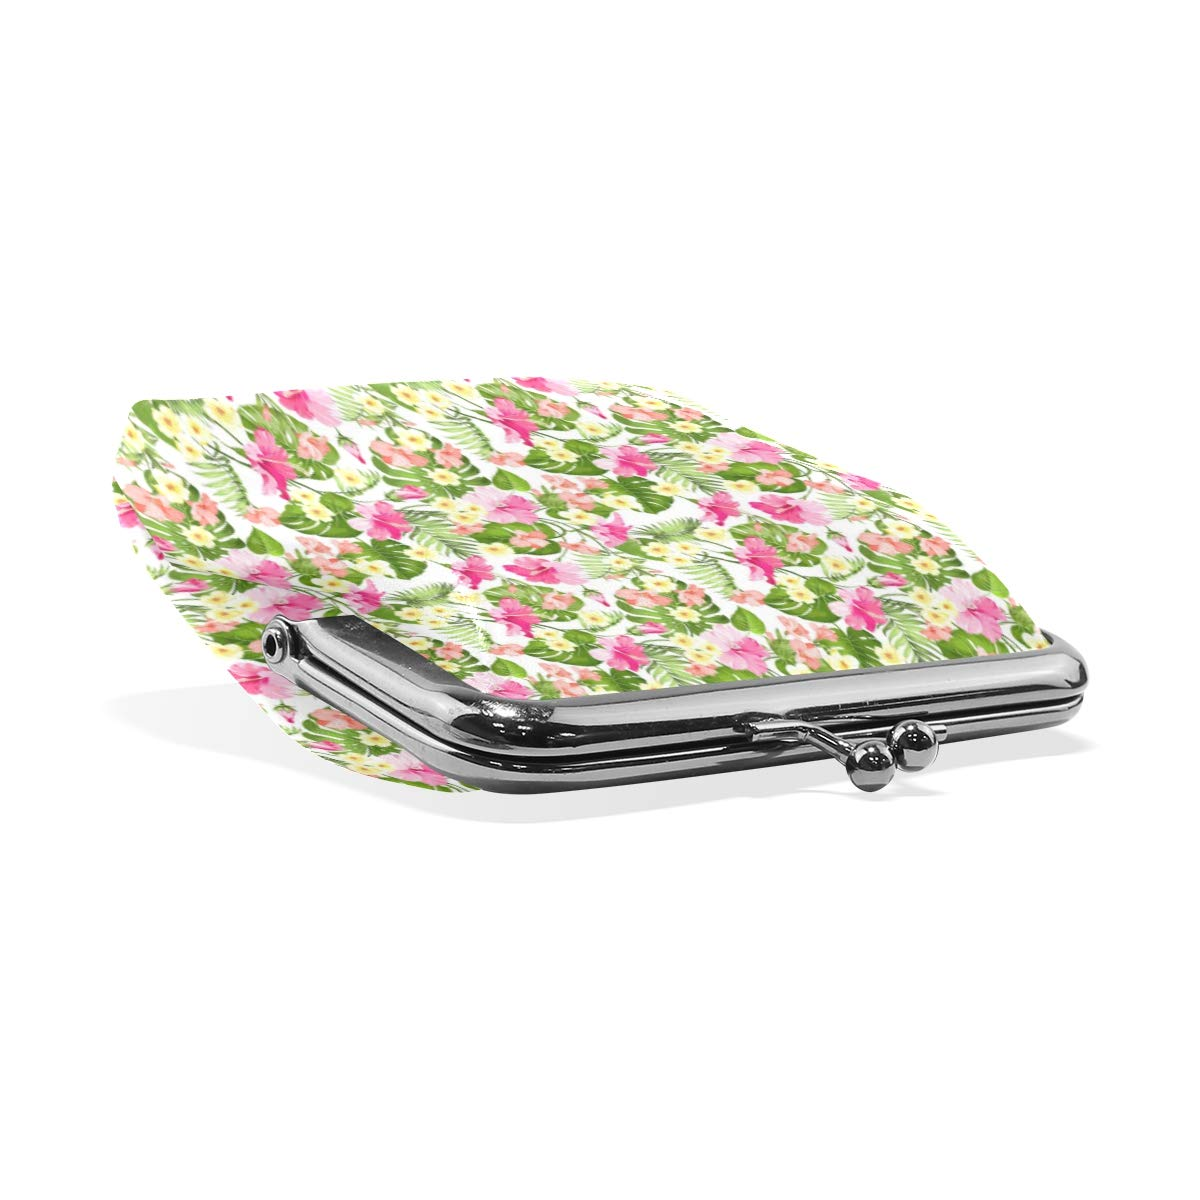 Exquisite Buckle Coin Purses Lily With Pink Flowers Mini Wallet Key Card Holder Purse for Women